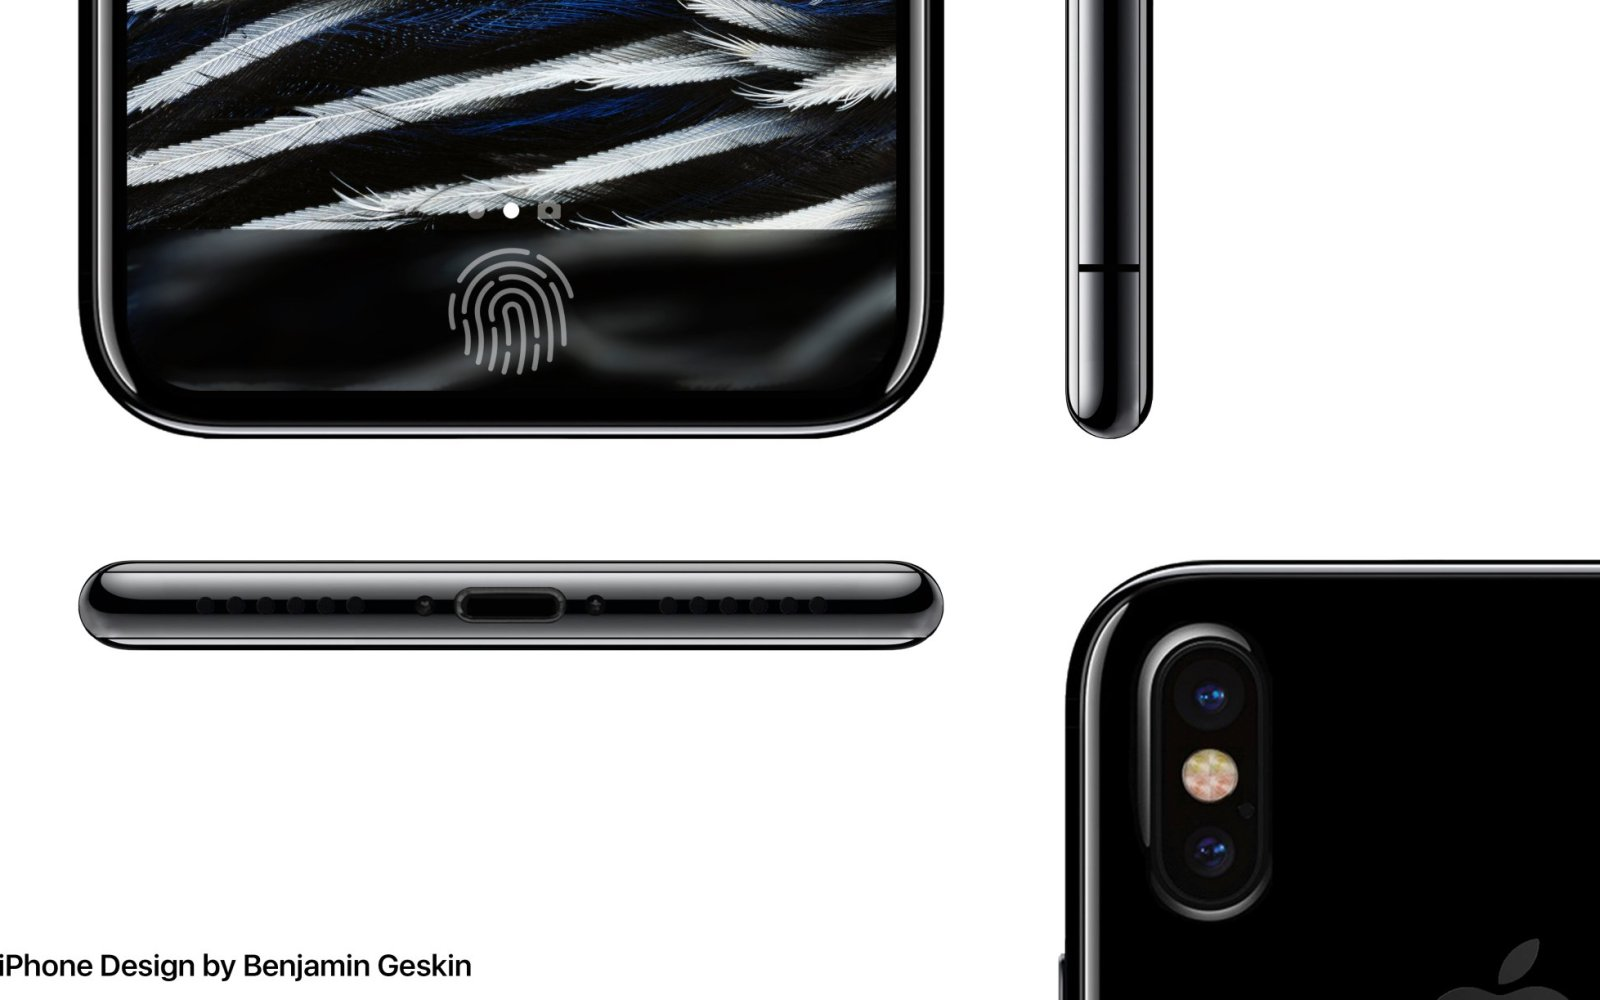 KGI: iPhone 8 mass production delayed to October/November as major component upgrades cause supply bottlenecks